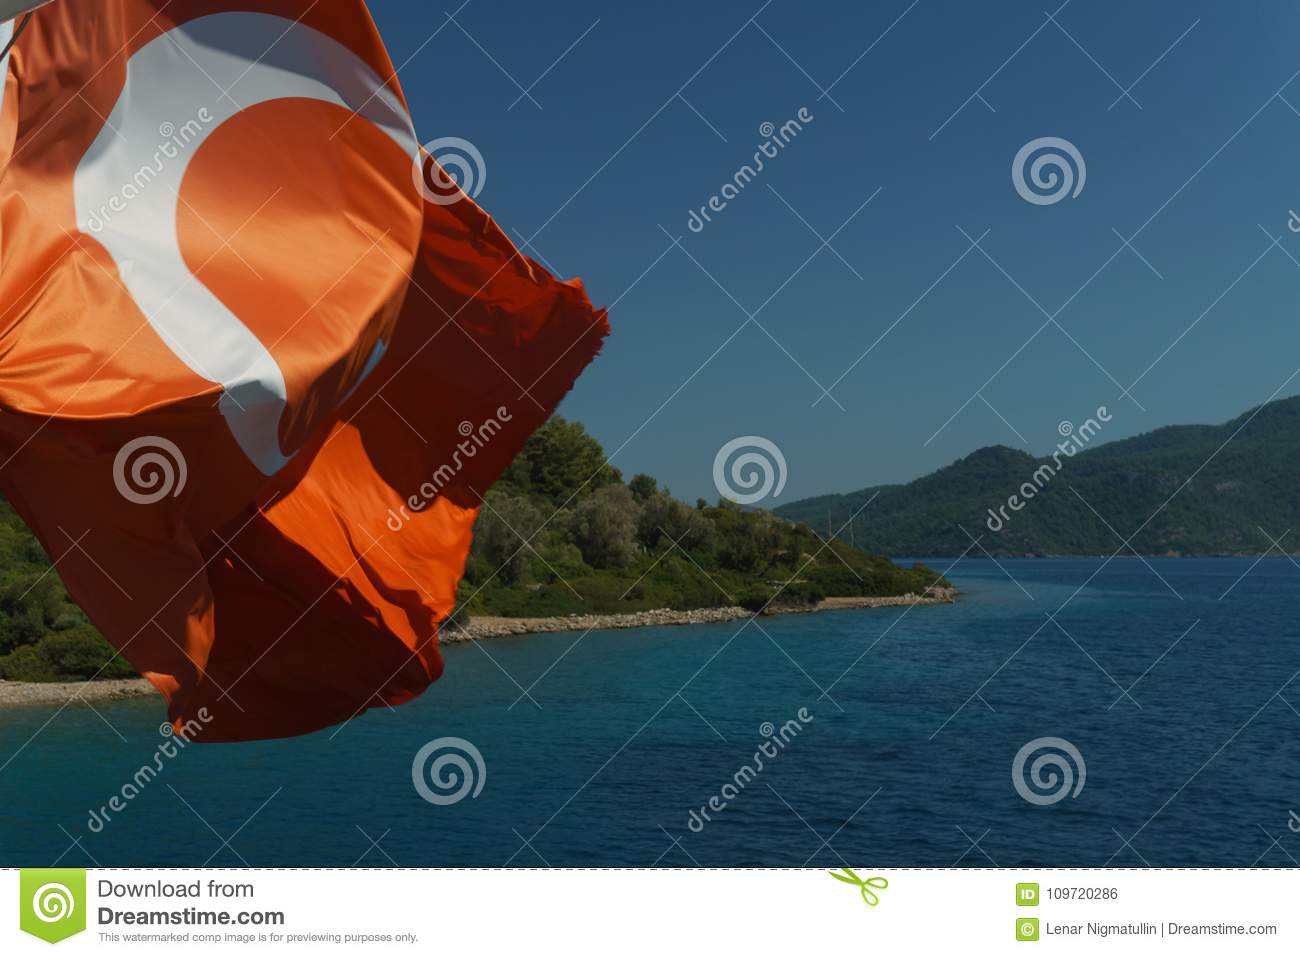 Waving flag of Turkey against the sea on a clear day